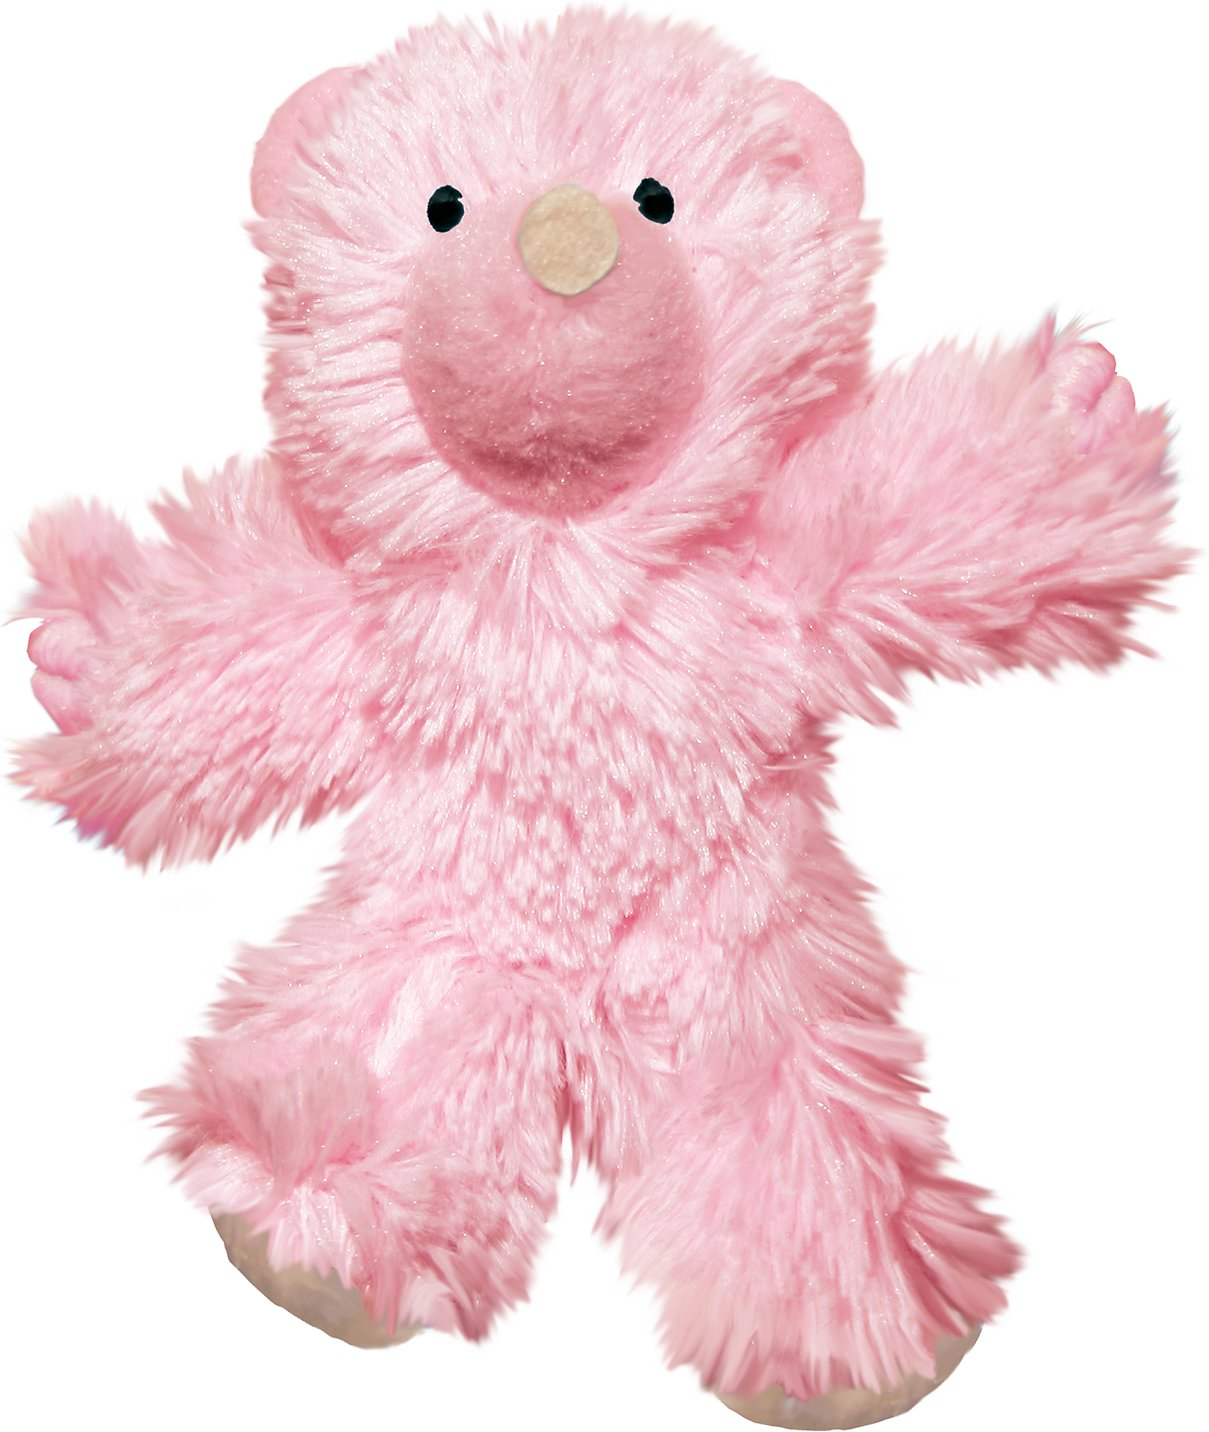 KONG Kitten Teddy Bear Cat Toy, Color Varies By KONG